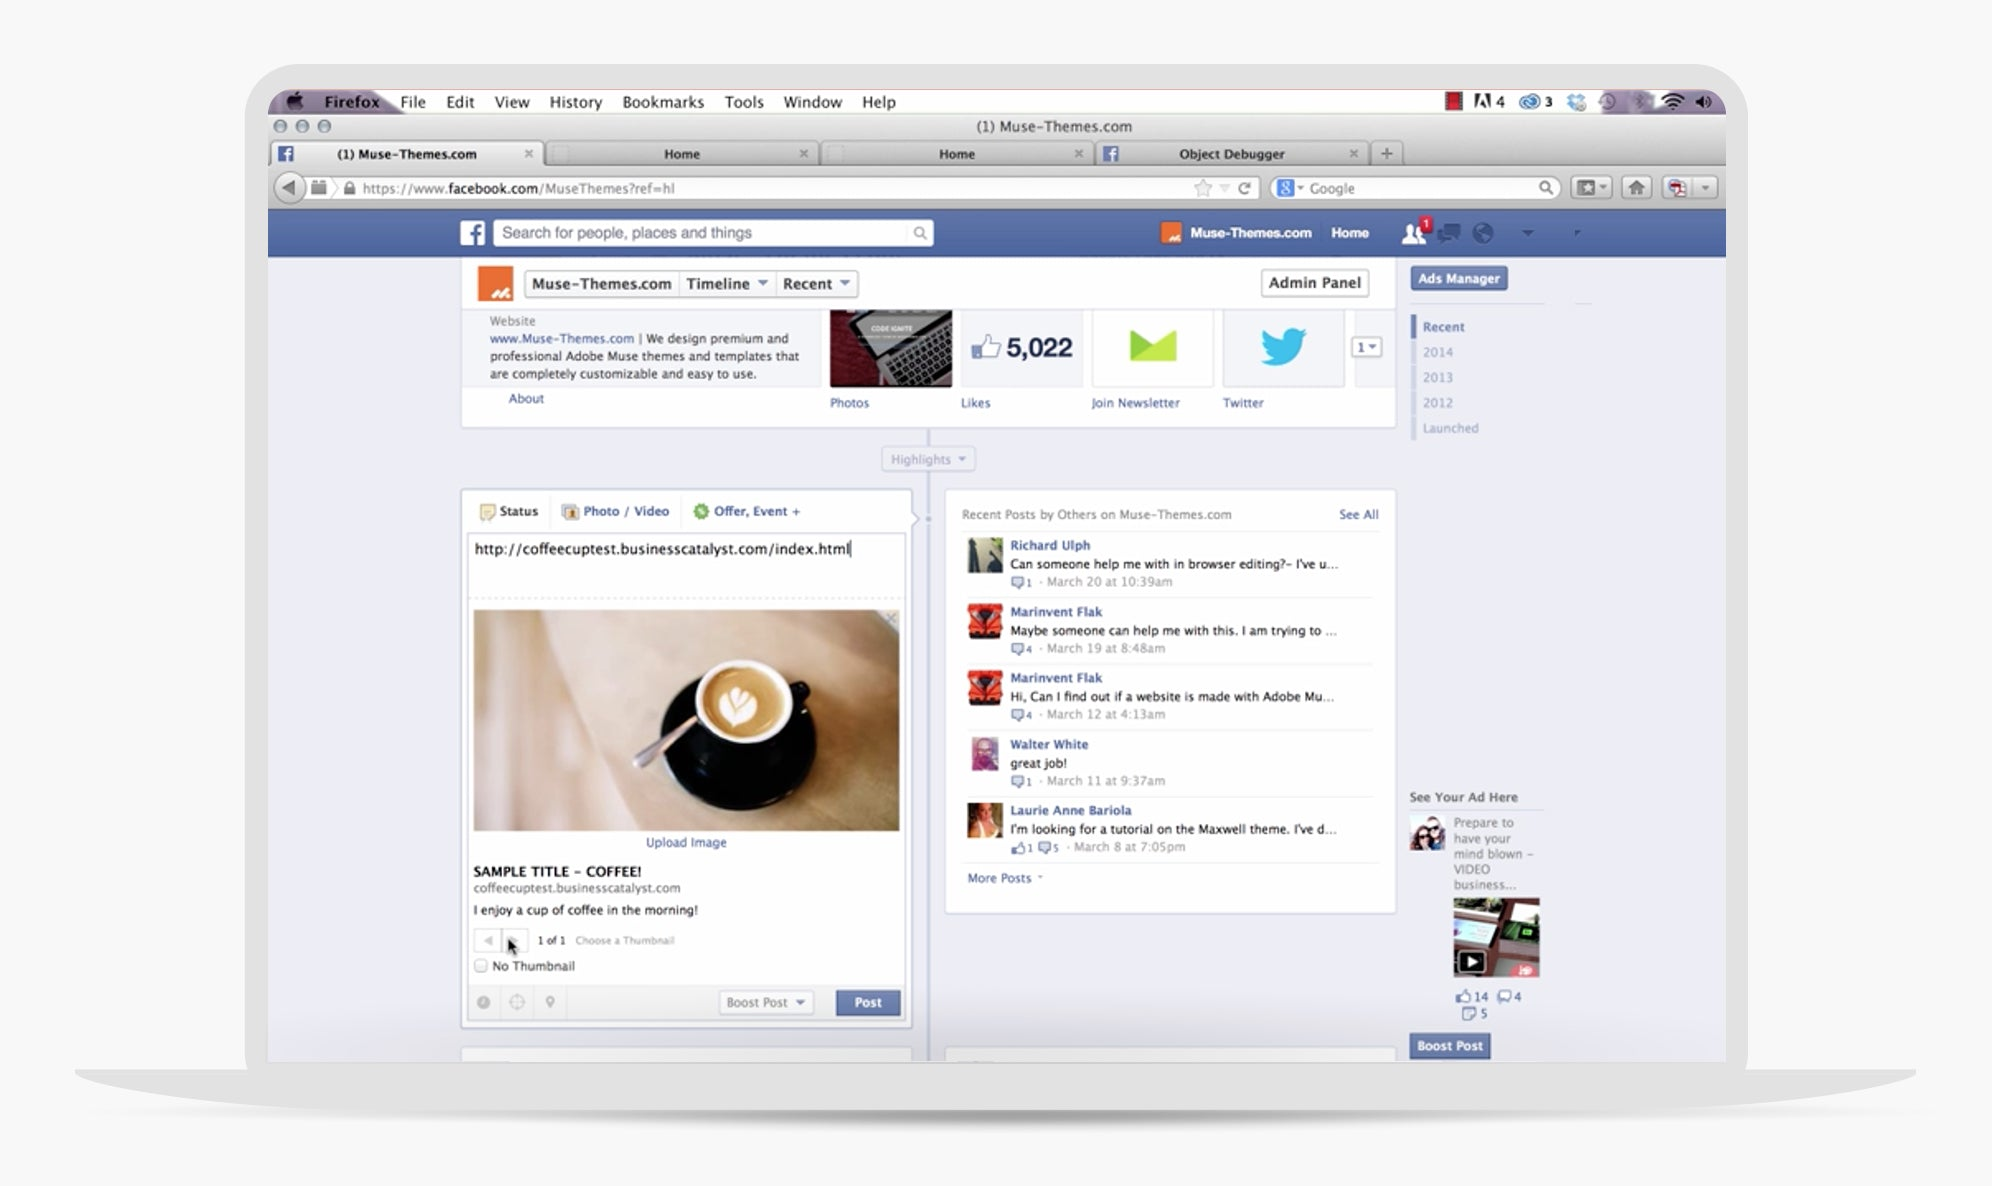 Adobe Muse Facebook Previews Widget by MuseThemes